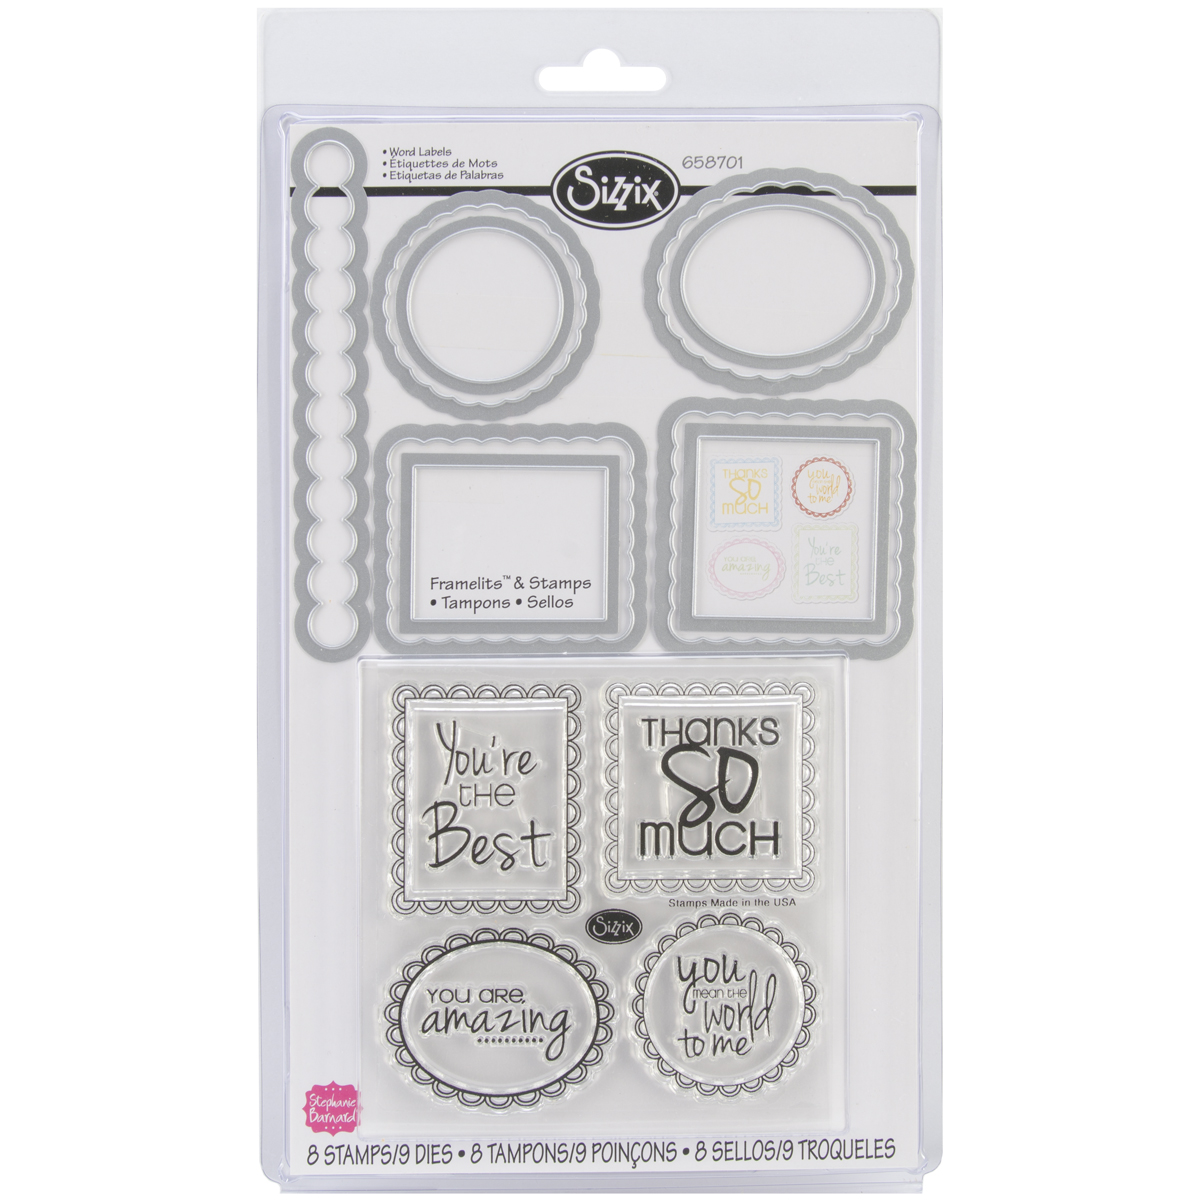 Sizzix Framelits Stamp and Die-Cut Set, Word Labels